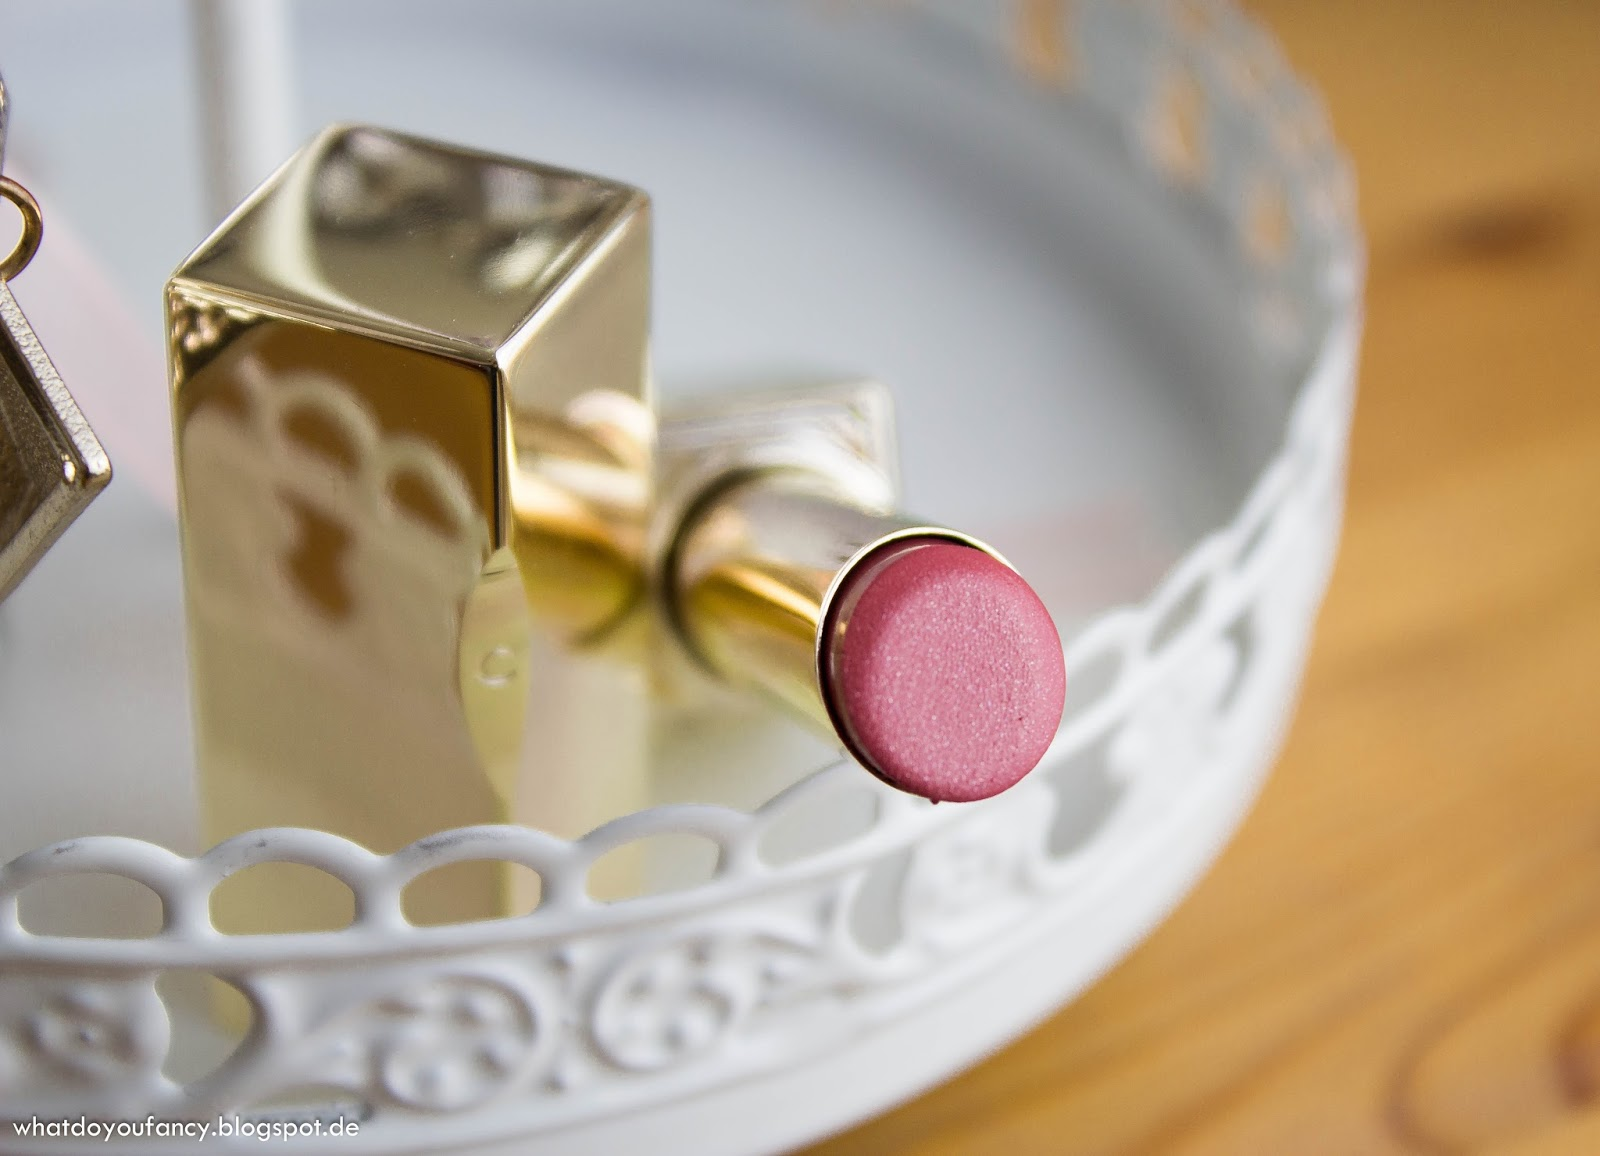 Clarins Rouge Prodige 107 Tea Rose – First Lipstick Love